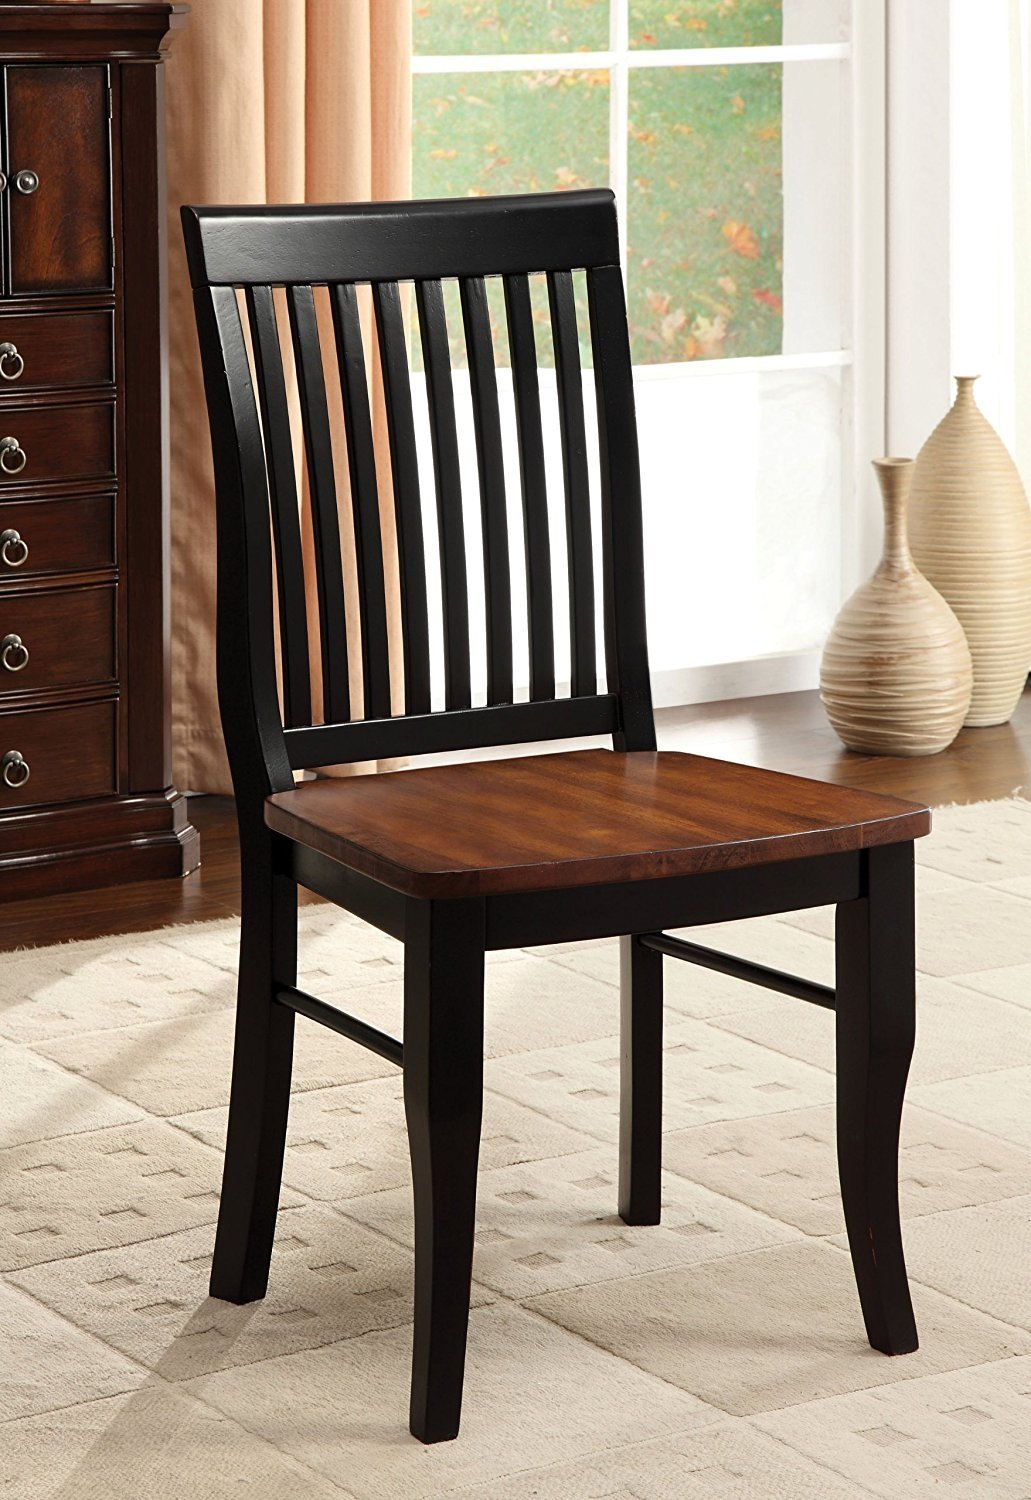 Furniture Of America Charleston Mission Style Dining Chair Antique